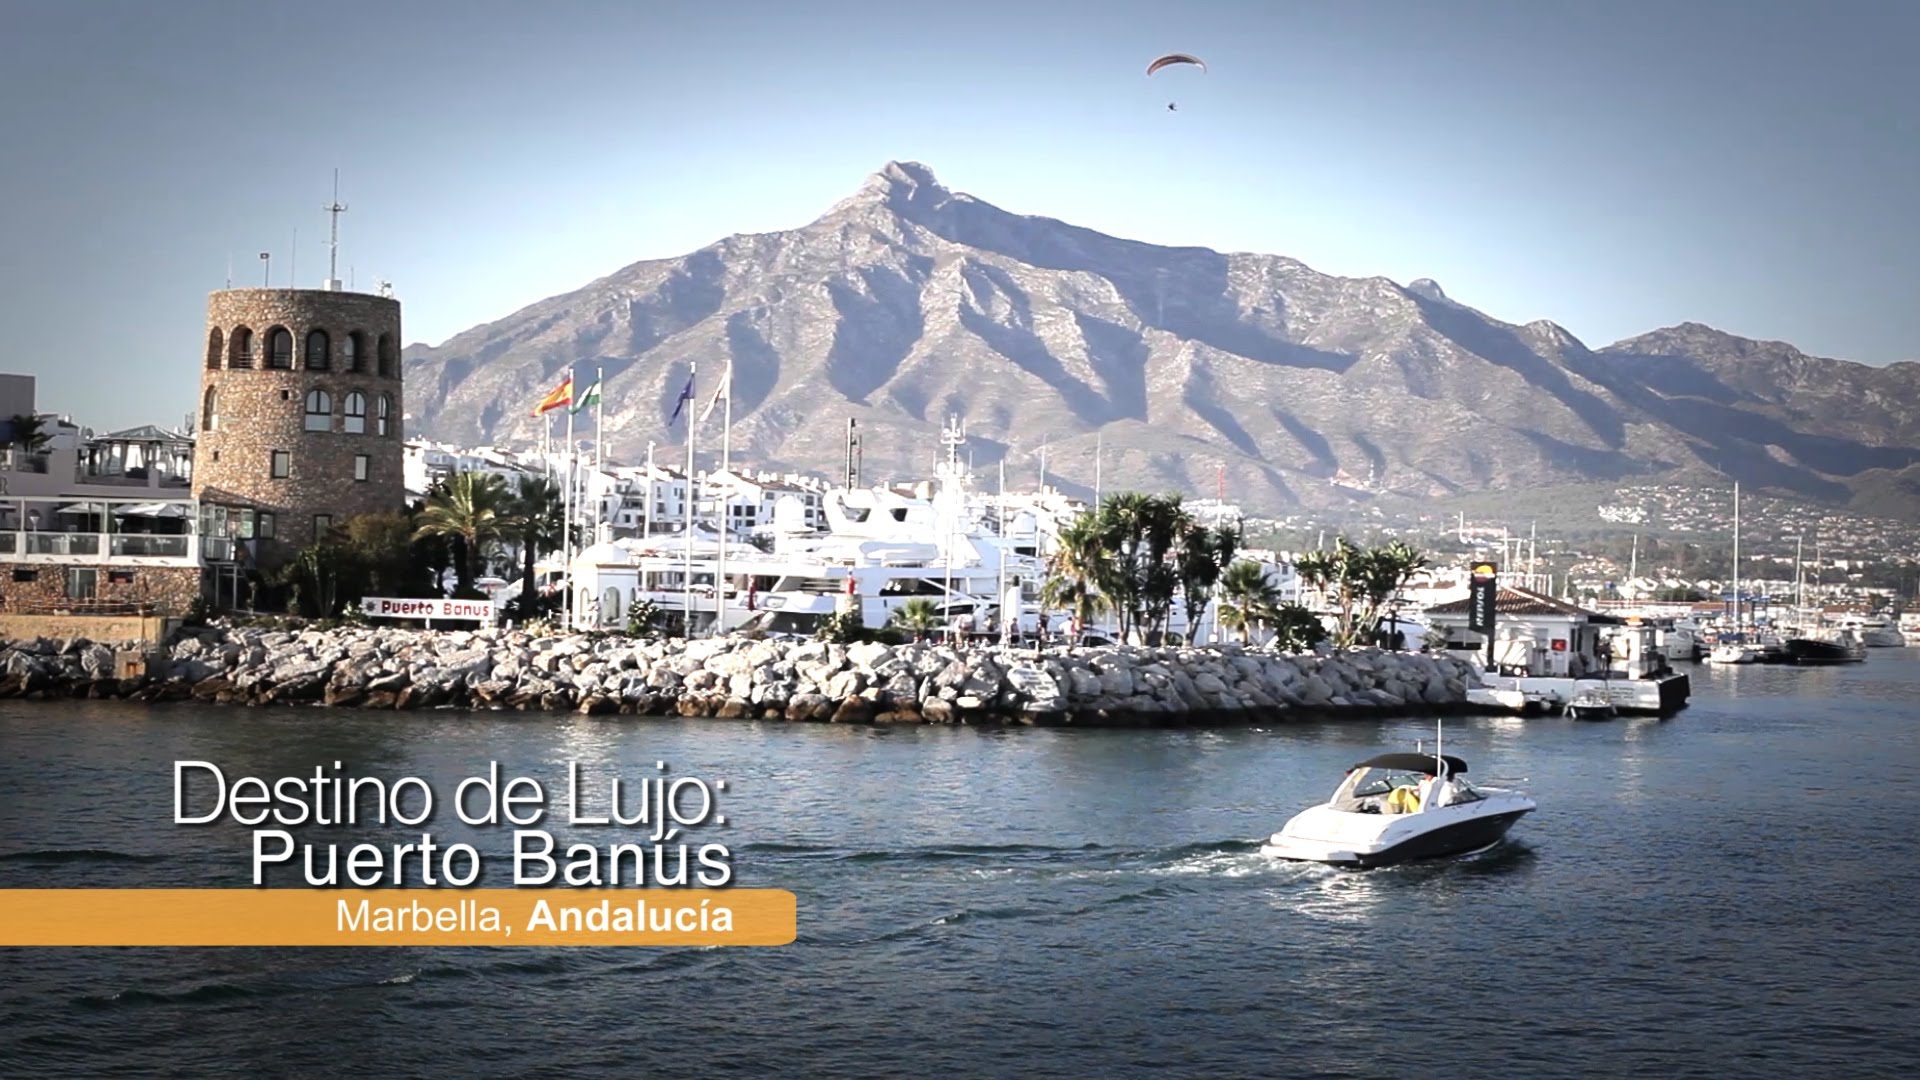 Reasons to buy a property in Marbella - Nevado Realty Real Estate in Marbella